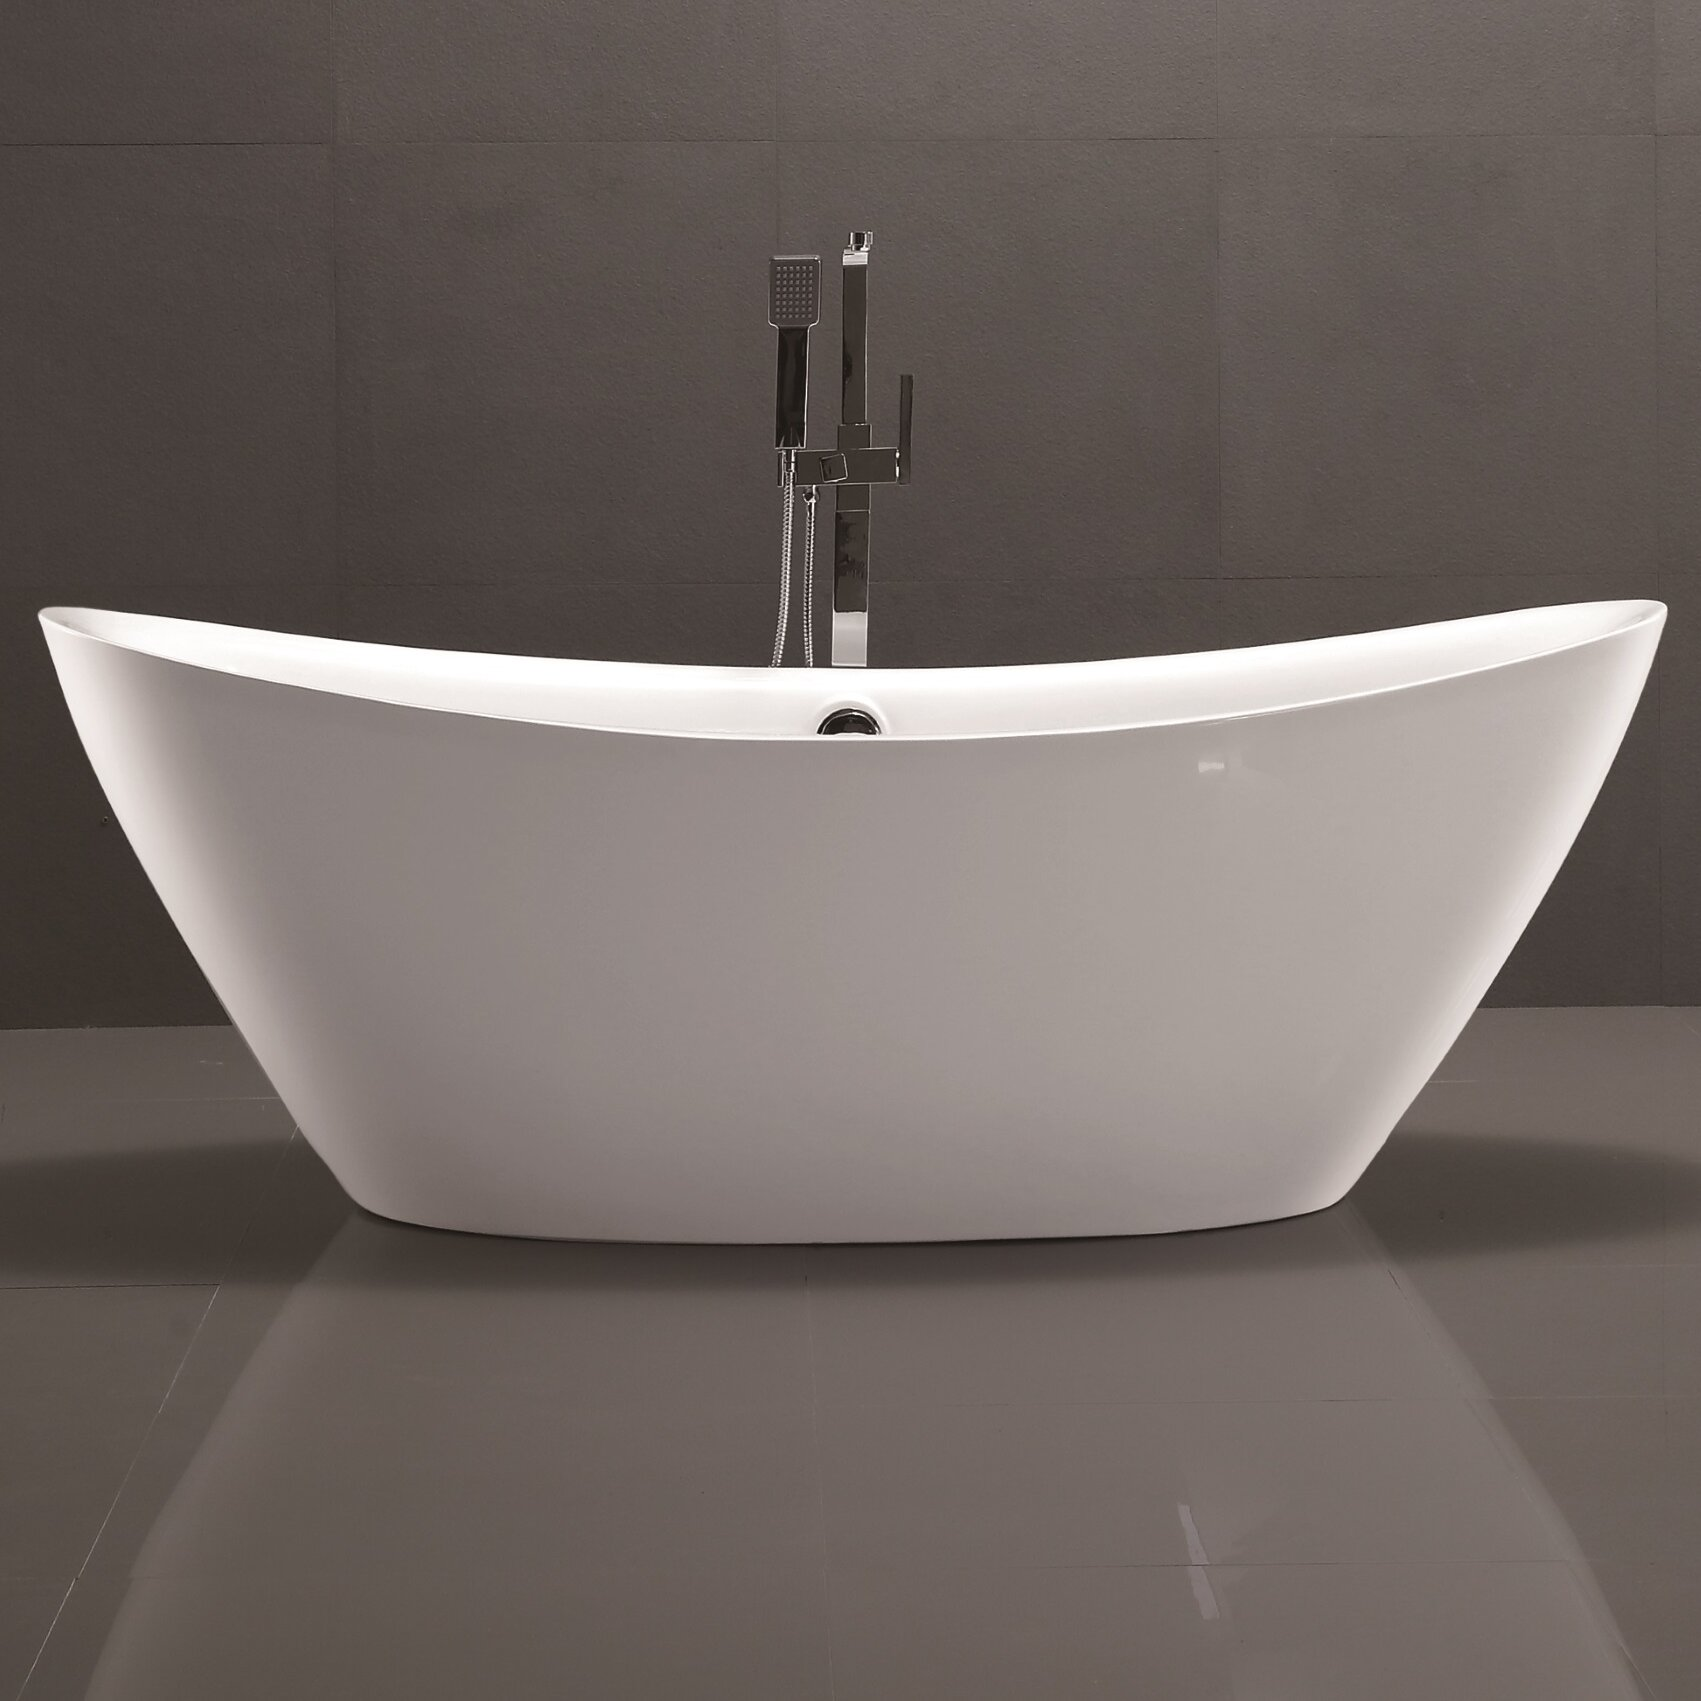 Vanityart 71 x 34 freestanding soaking bathtub for How long is a standard bathtub